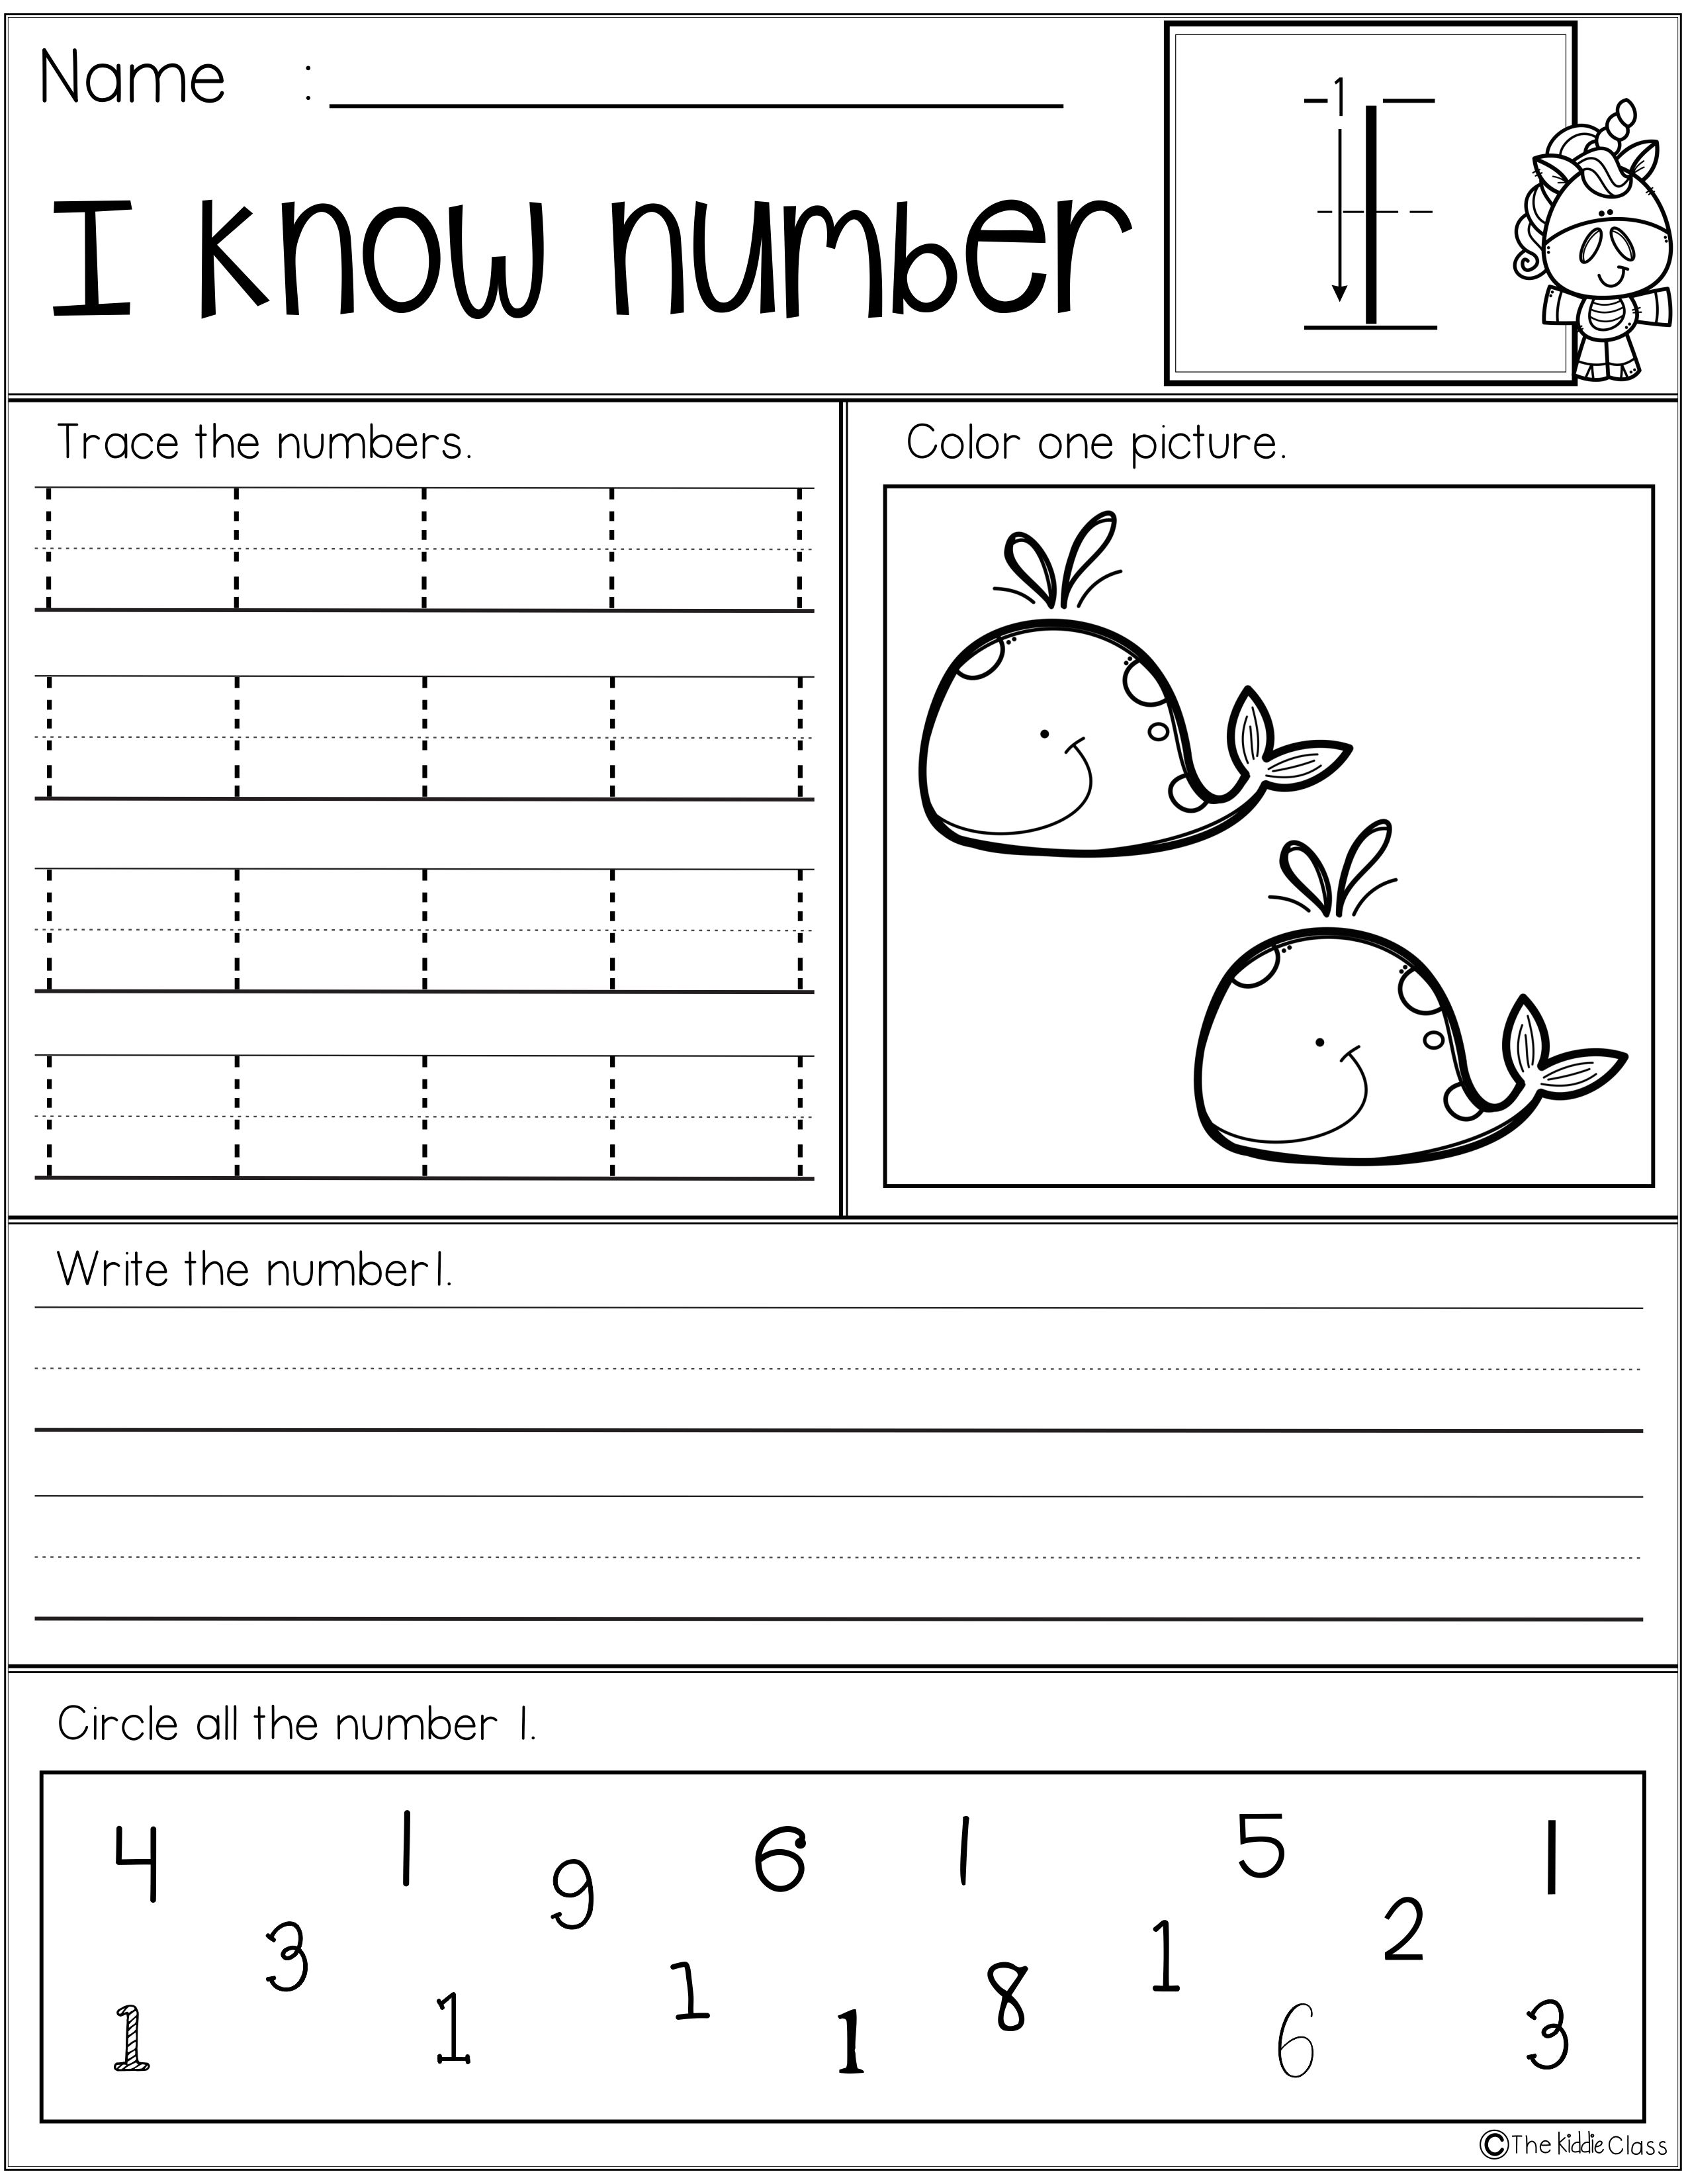 hight resolution of https://cute766.info/numbers-worksheets-learning-numbers-for-preschool-kindergarten-and-grade-1-k5-learning/